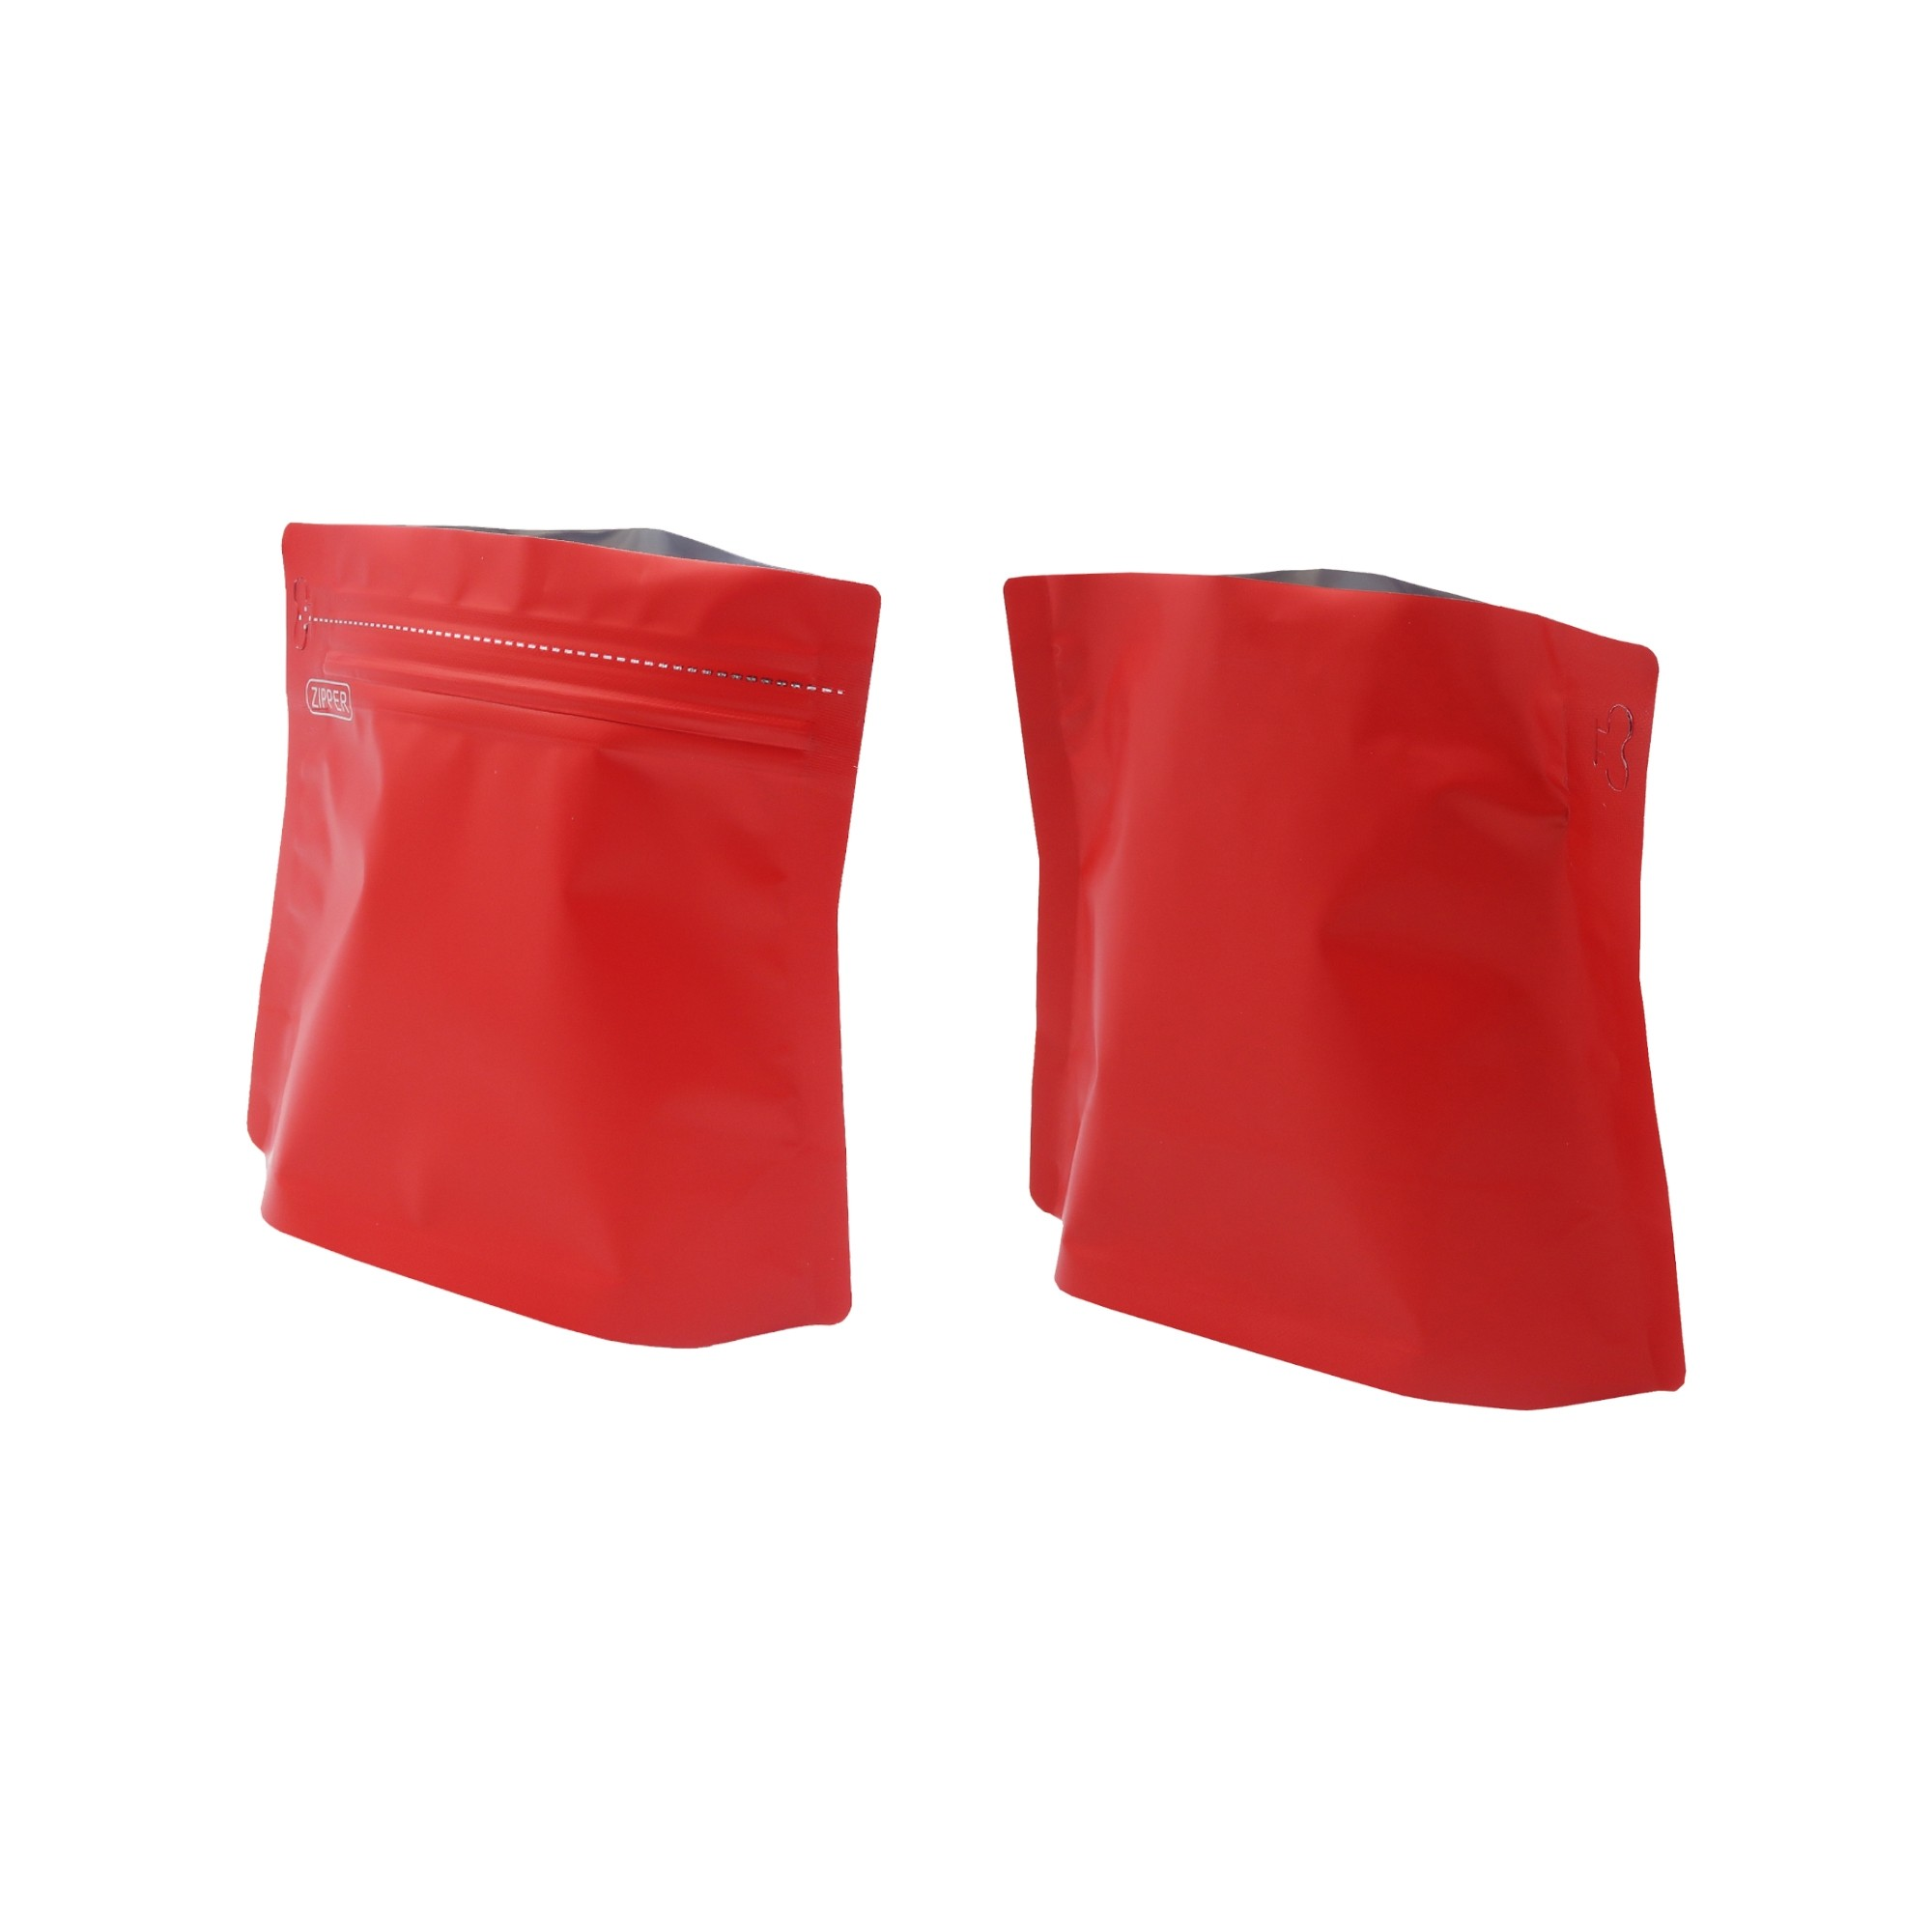 150g Matte Red Bottom Gusseted Coffee Storage Aluminum Bags with Pull Tab (100 Bags/Lot)